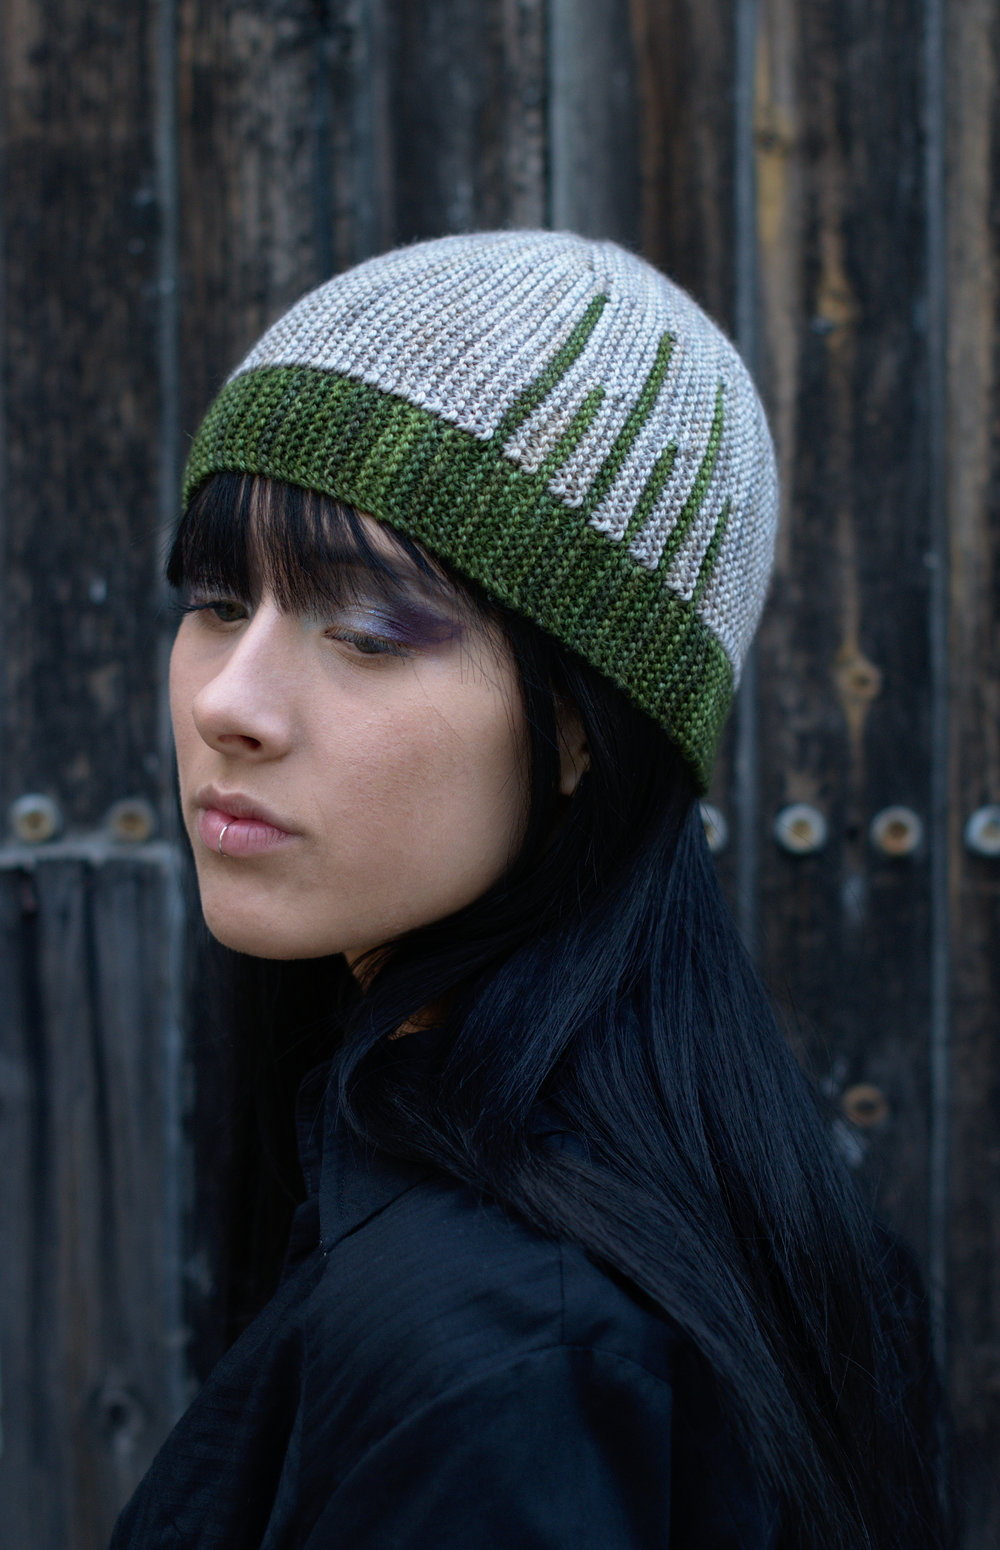 Copy of Parallelo sideways knit short row colourwork Hat knitting pattern